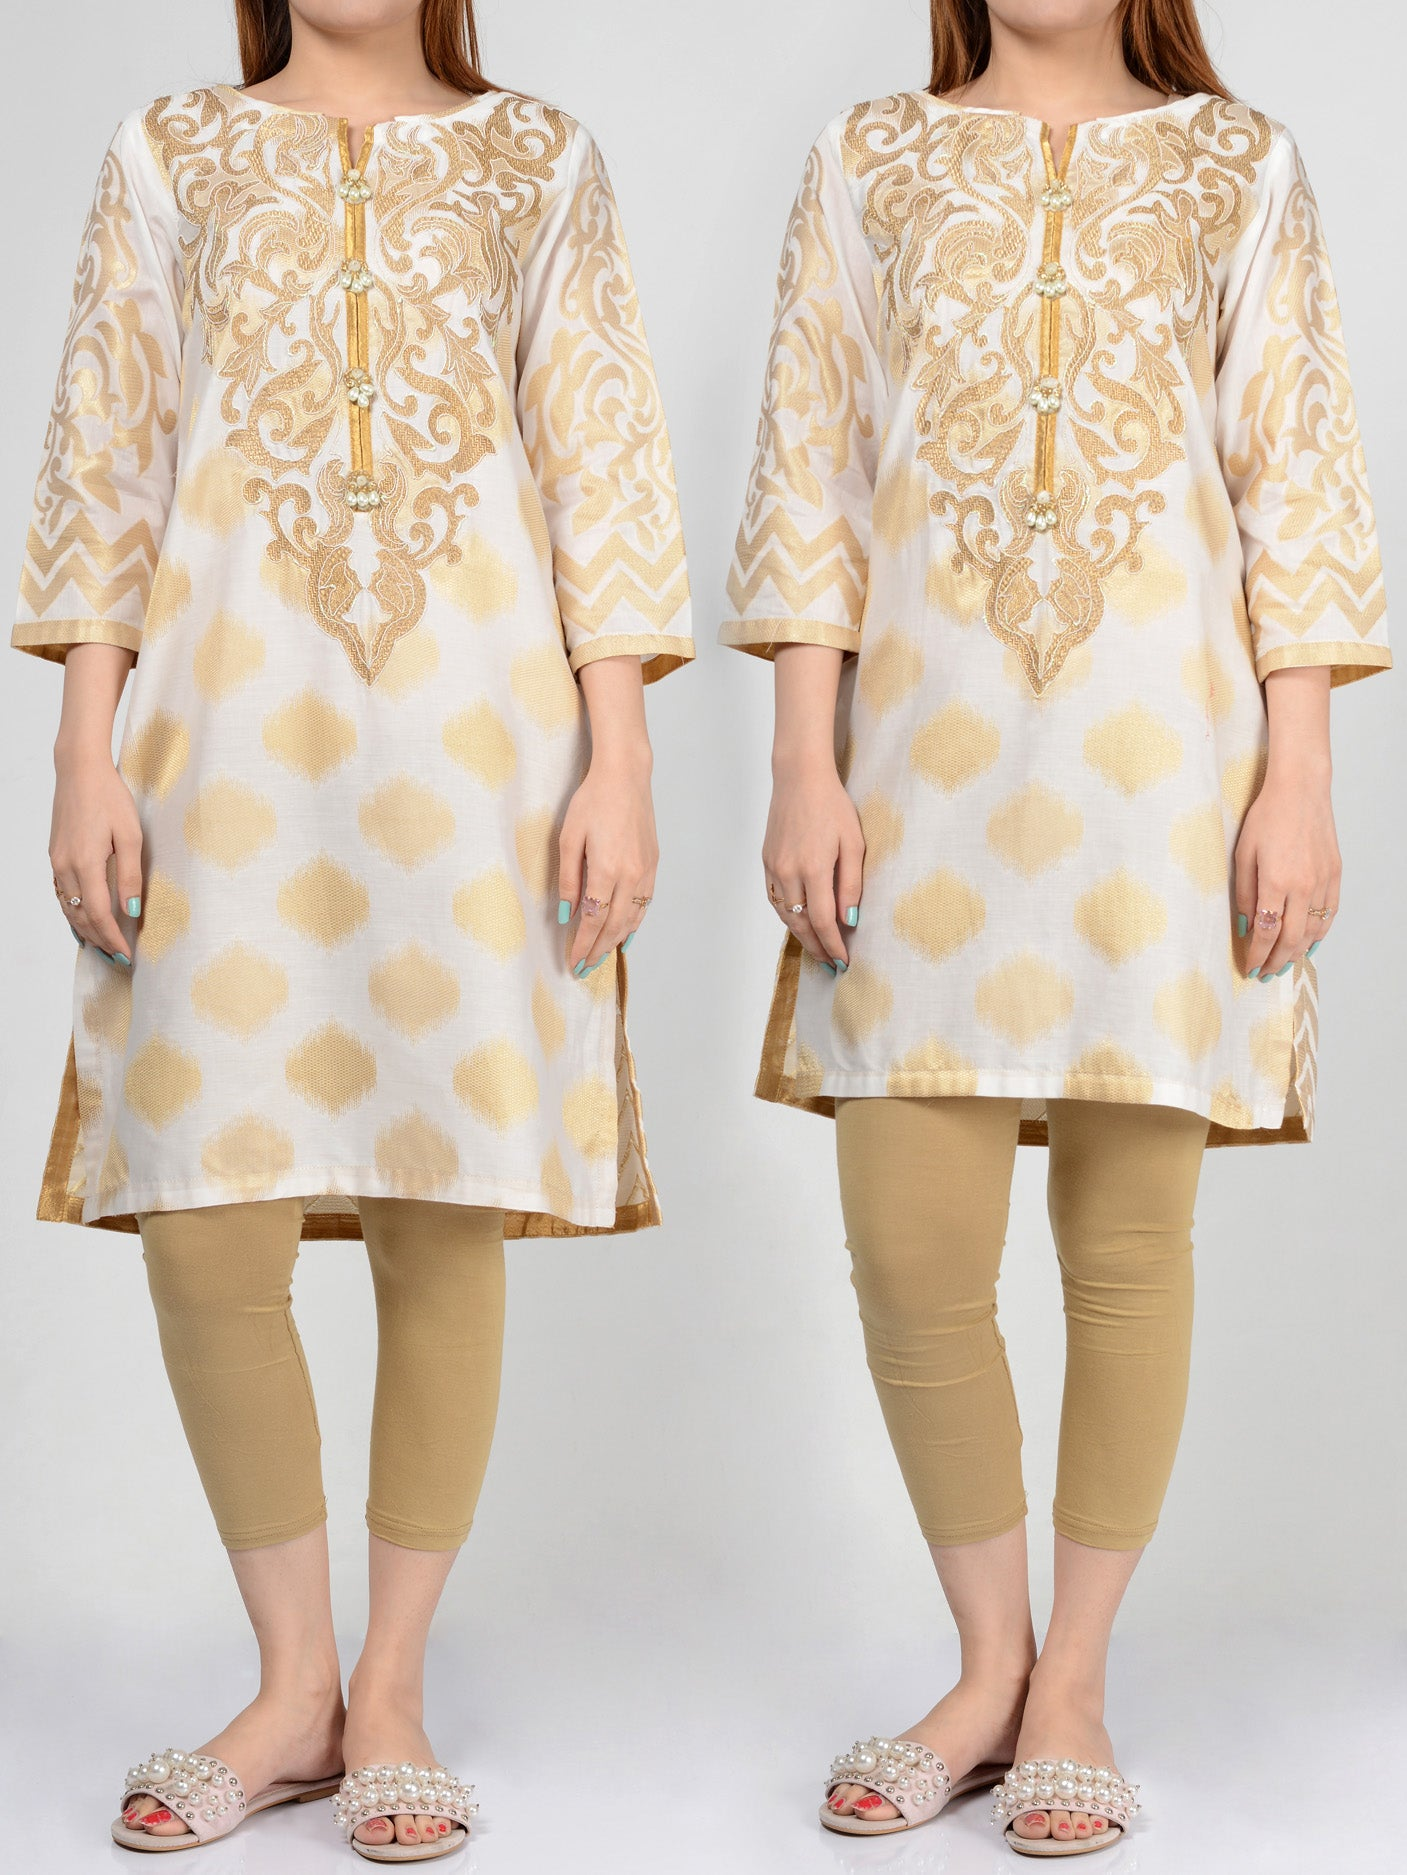 Limelight Pret Embroidered Jacquard Shirt p0248 buy Online in Pakistan | Limelight.pk